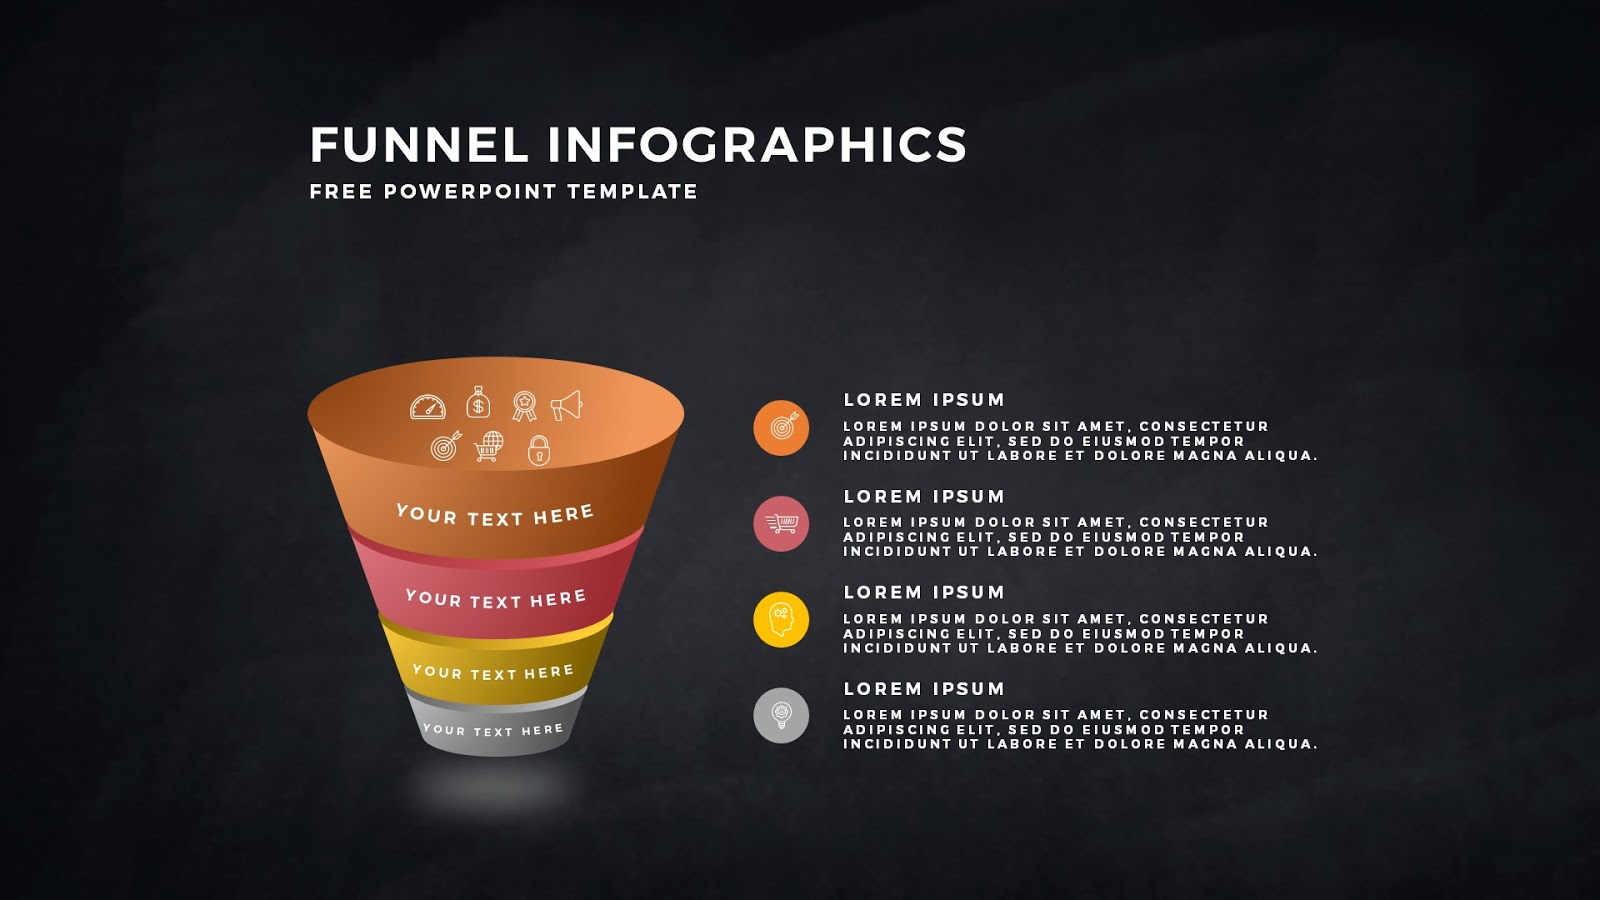 Infographic Marketing Funnel Free PowerPoint Templates ...